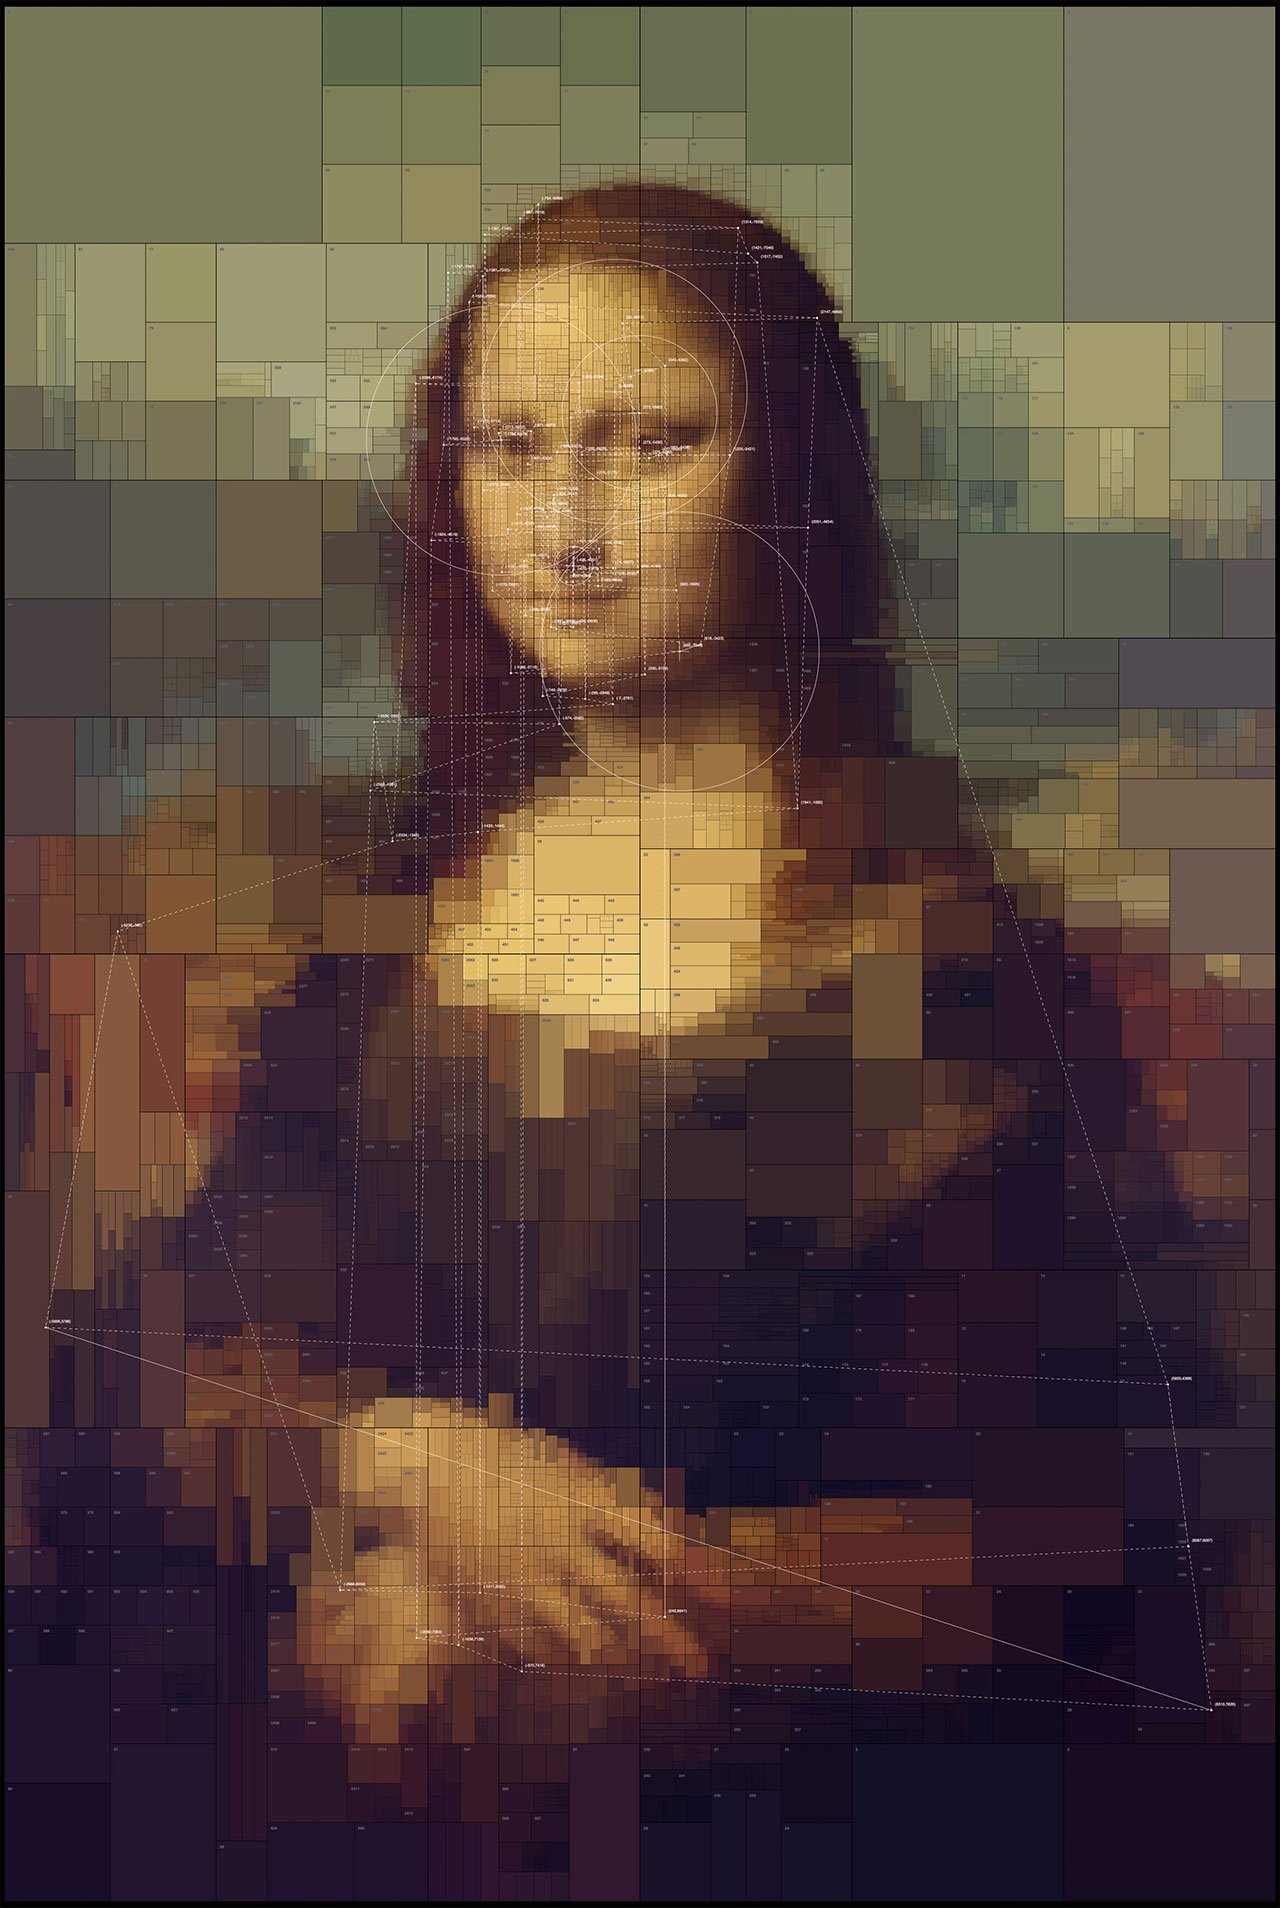 Mona Lisa, from Portraits series by Dimitris Ladopoulos (Original painting by Leonardo da Vinci, 1503–06, perhaps continuing until 1517).